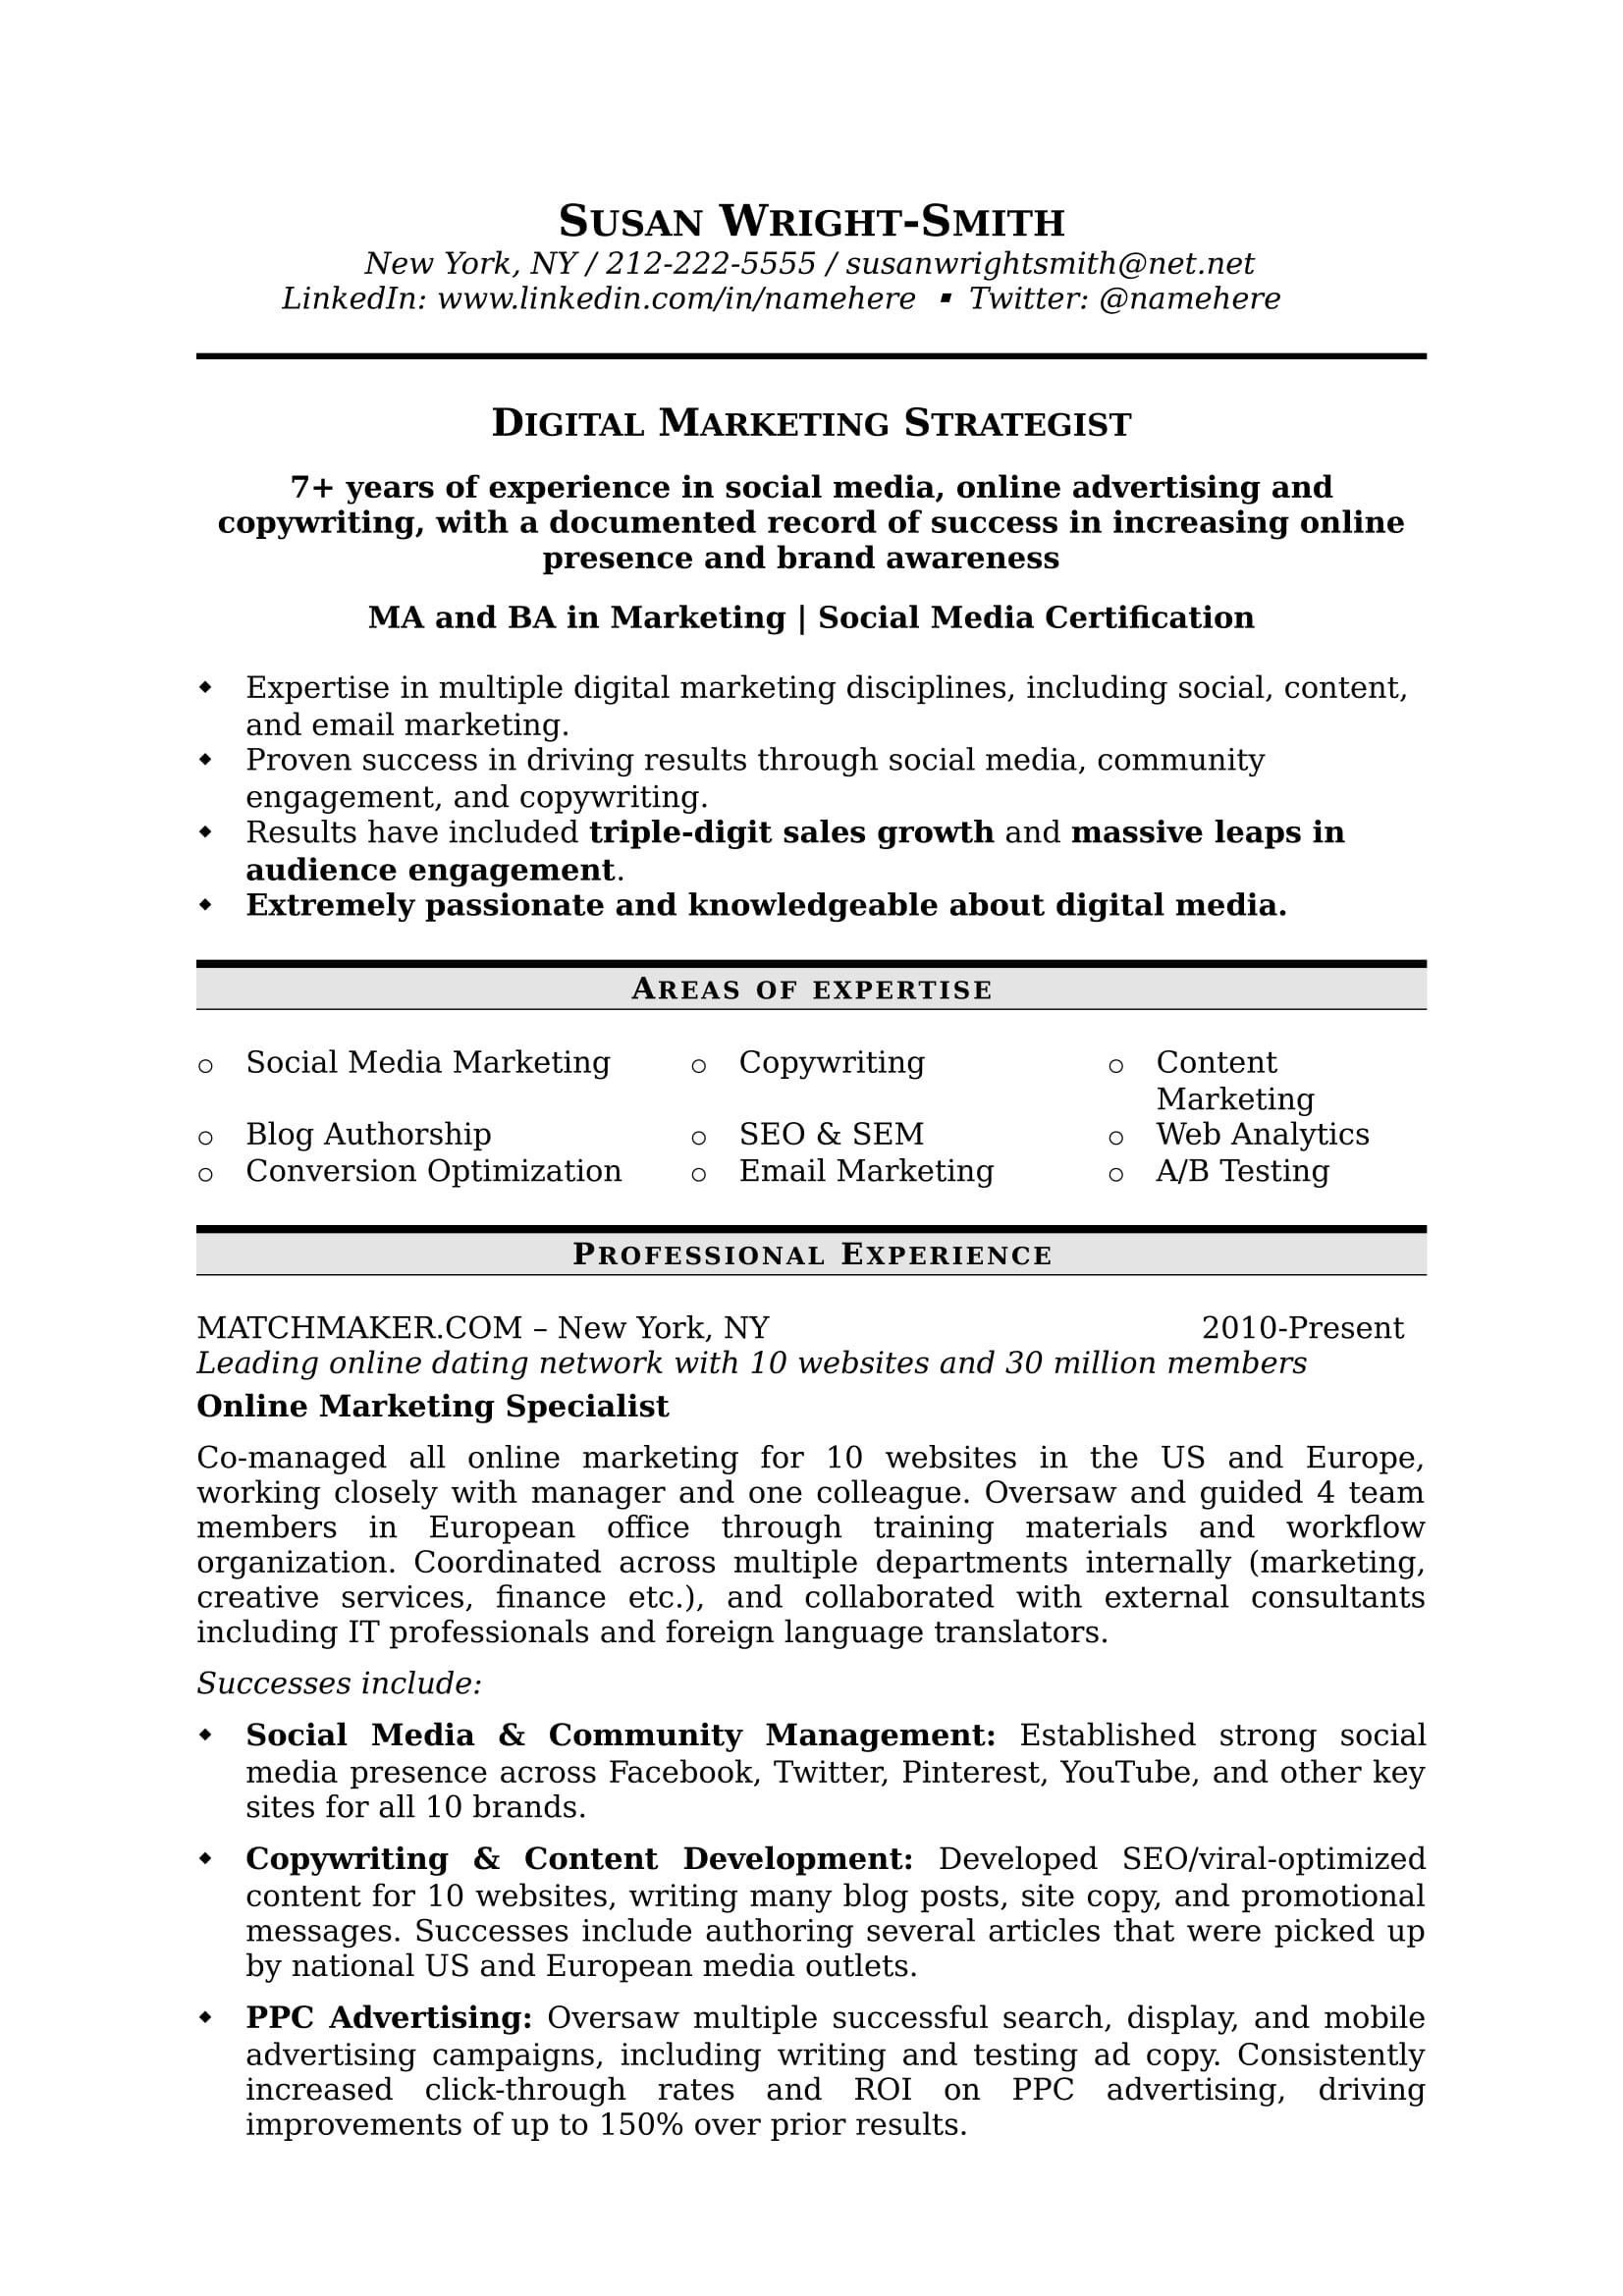 to write marketing resume hiring managers notice free templates samples examples digital Resume Marketing Resume Examples 2020